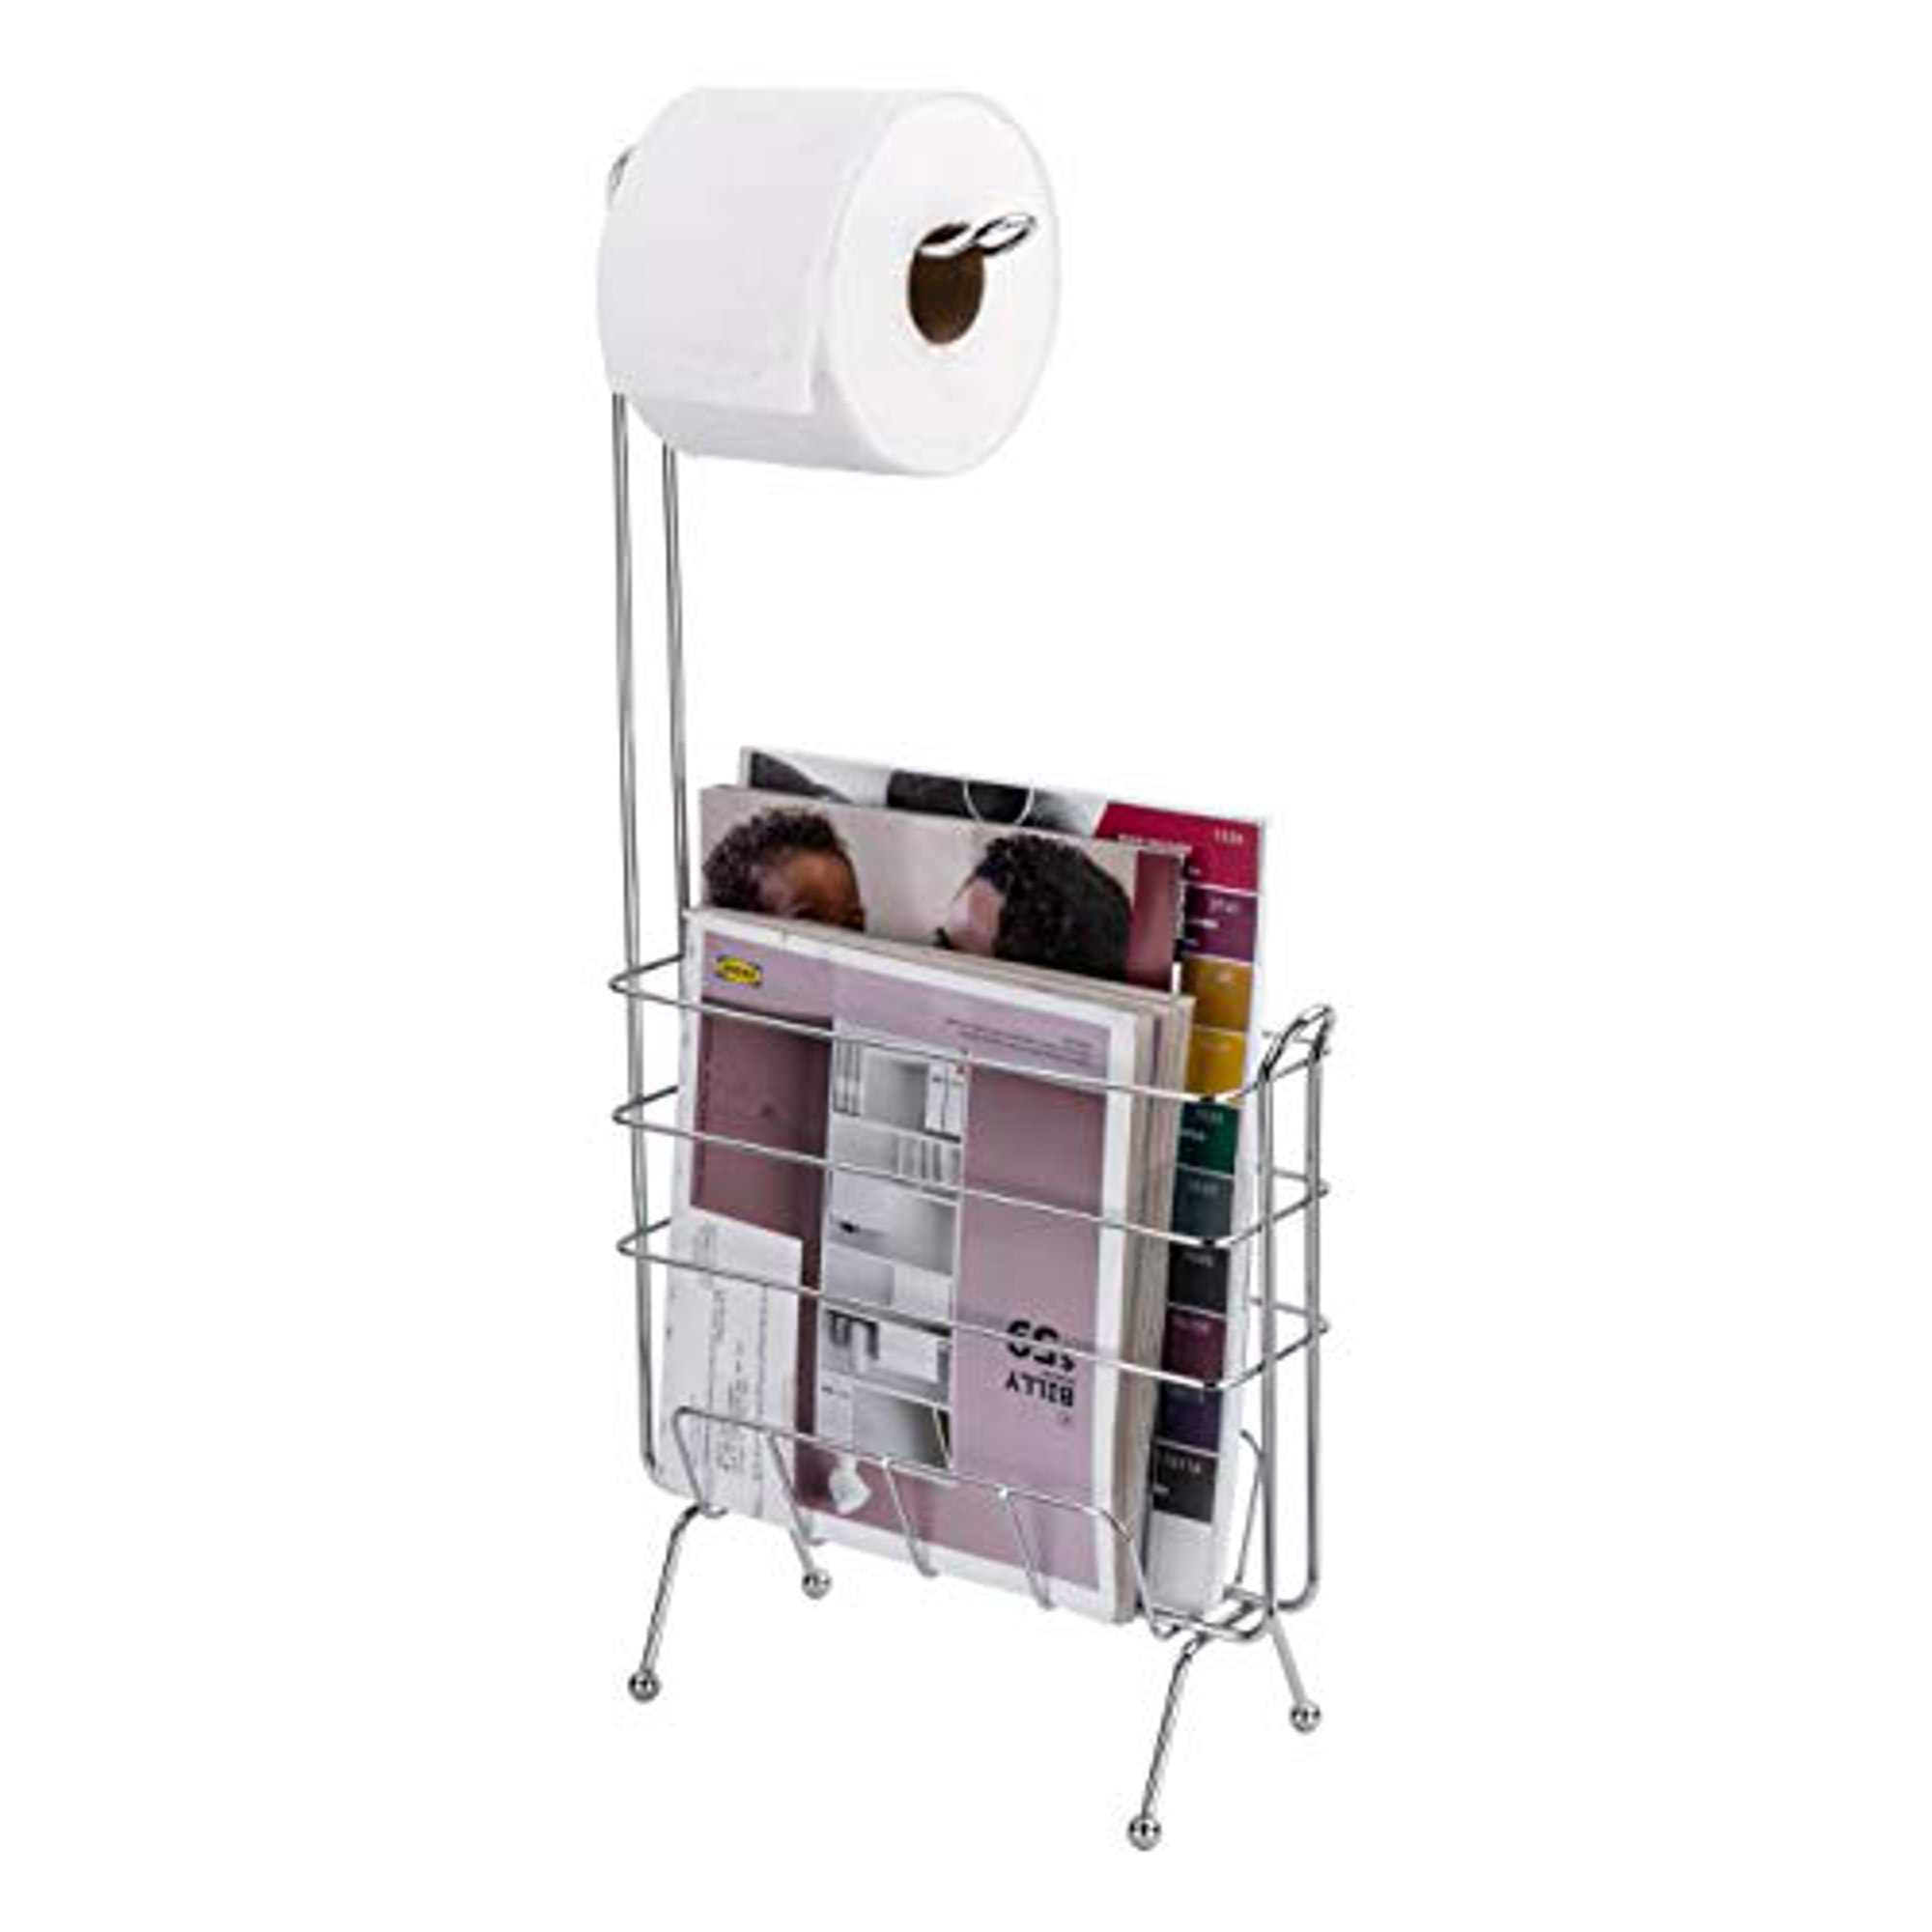 Ldr Industries Free Standing Toilet Paper Holder And Magazine Rack Bathroom Storage Organizer Rectangular Pedestal Design Bathroom Tissue Holder Chrome Walmart Canada